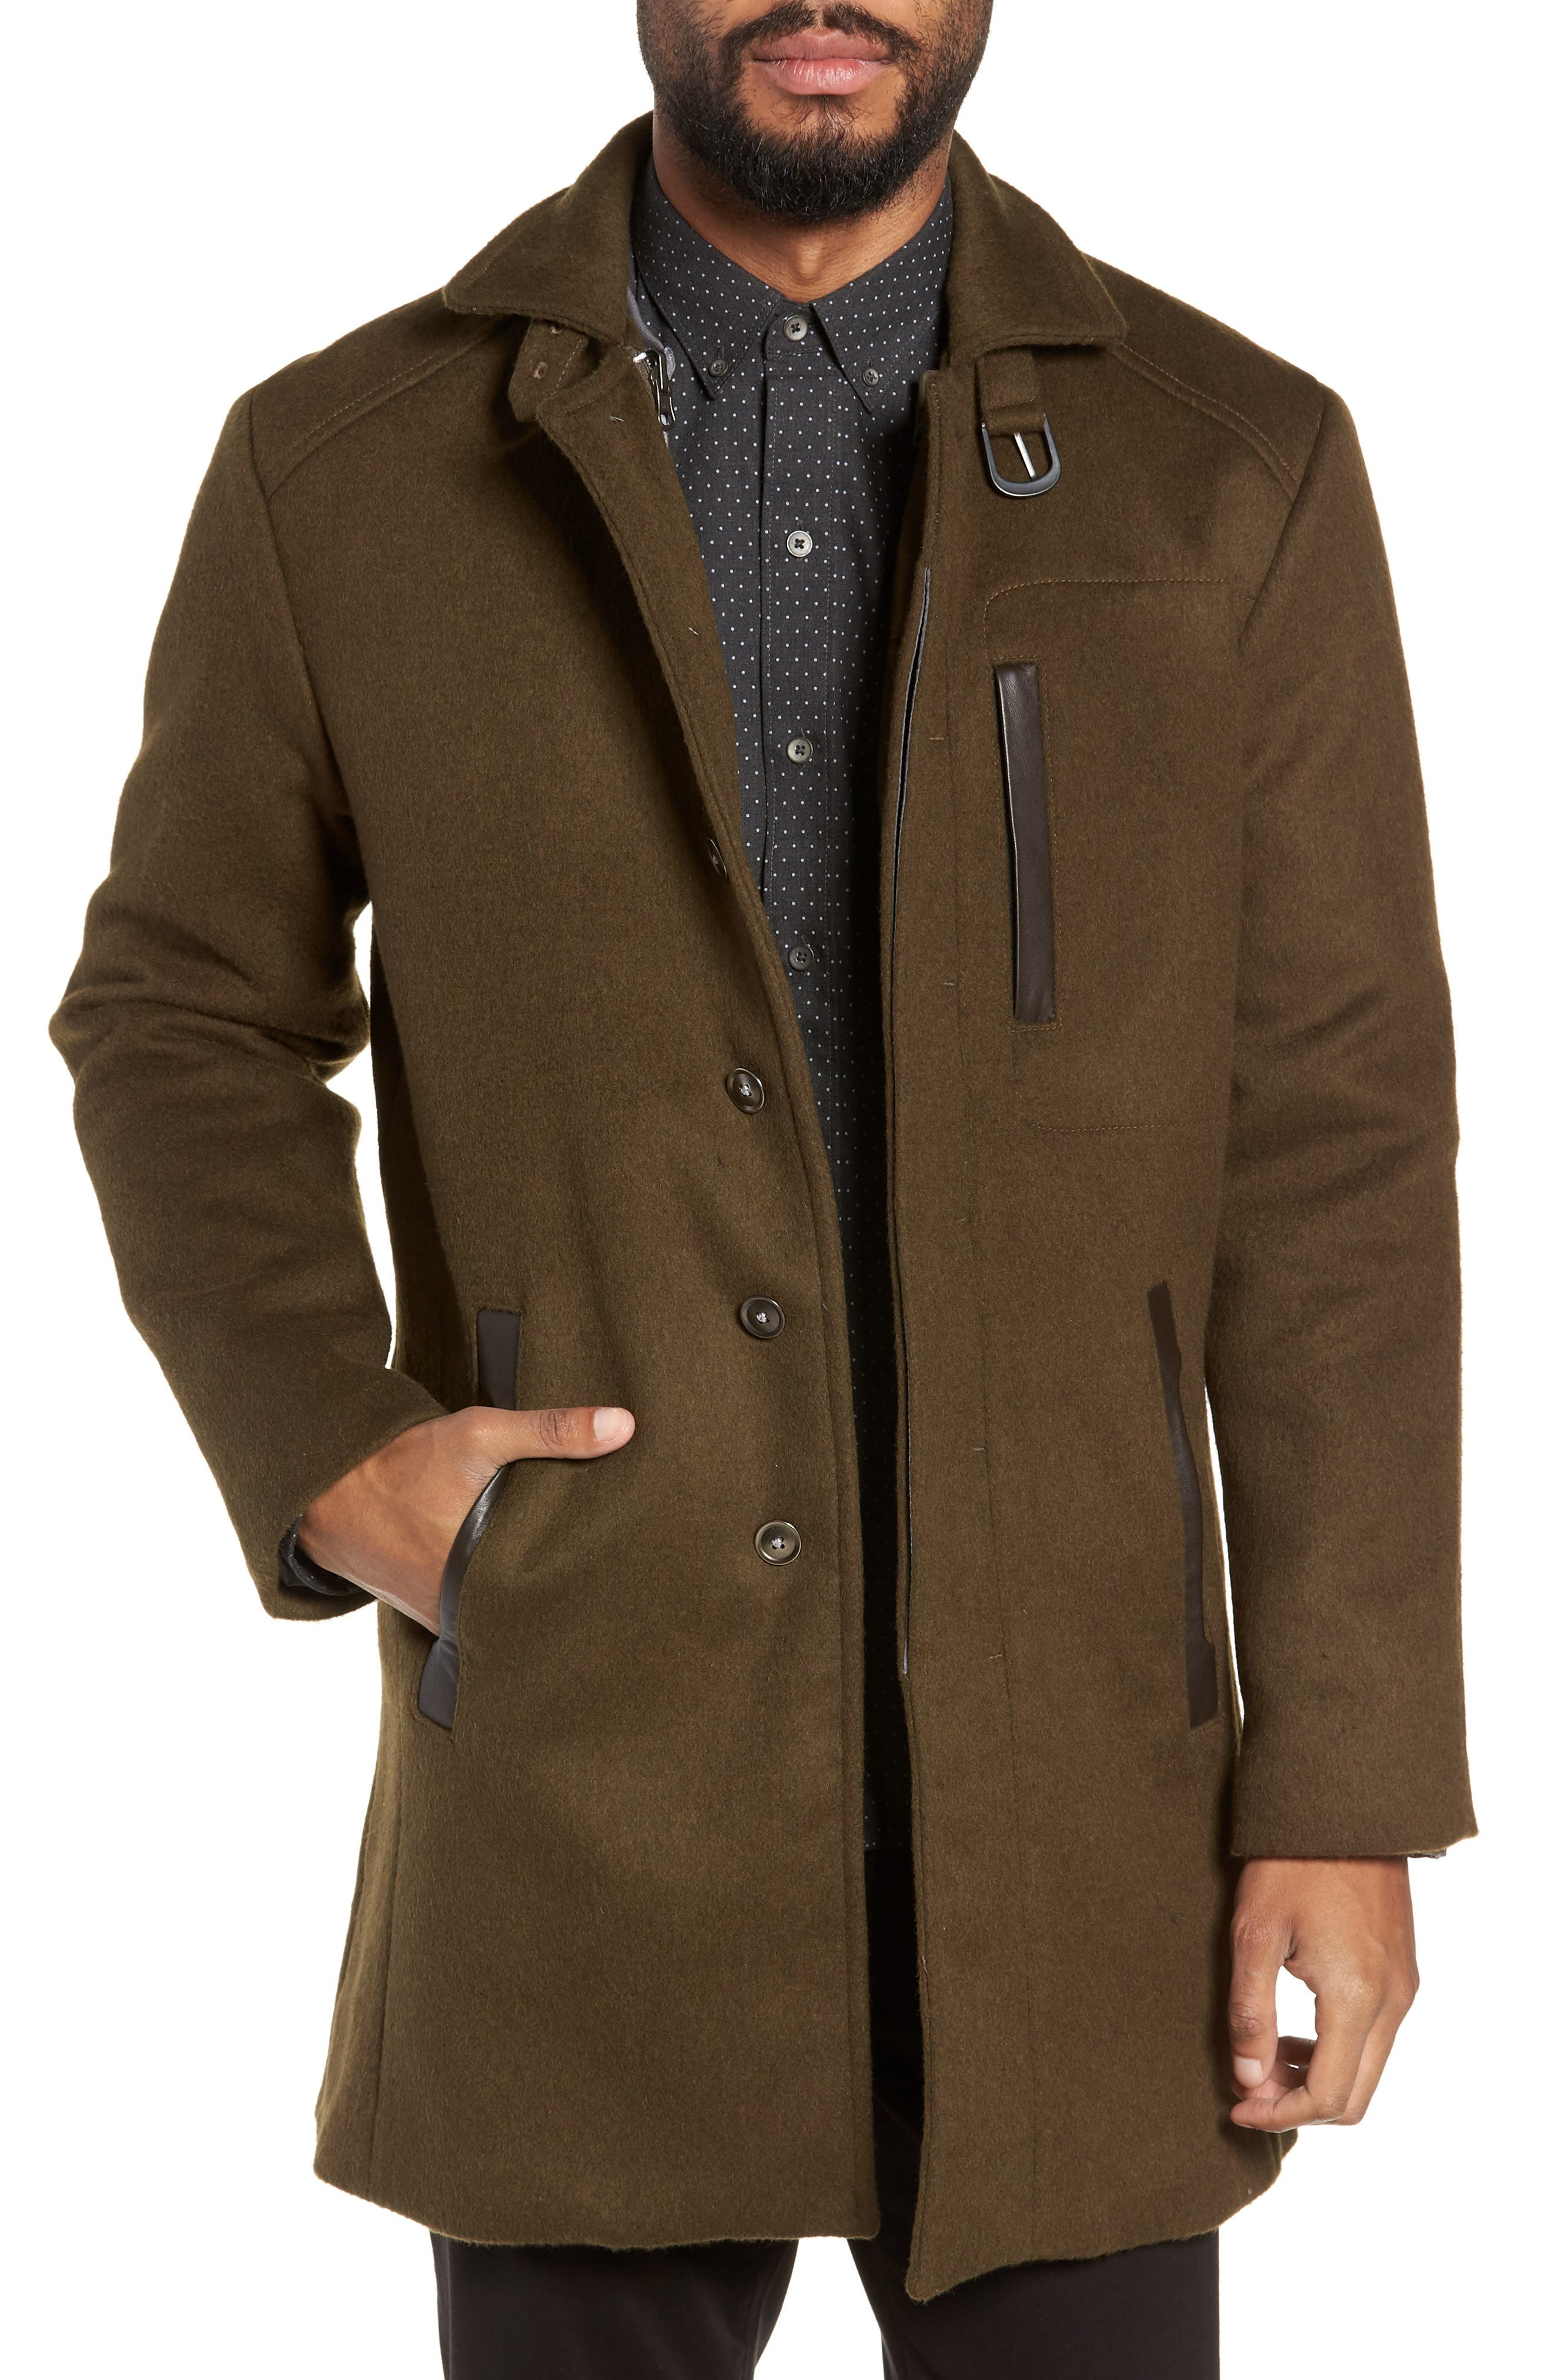 Kilo 3-in-1 Peacoat with Removable Quilted Jacket,                             Main thumbnail 1, color,                             OLIVE